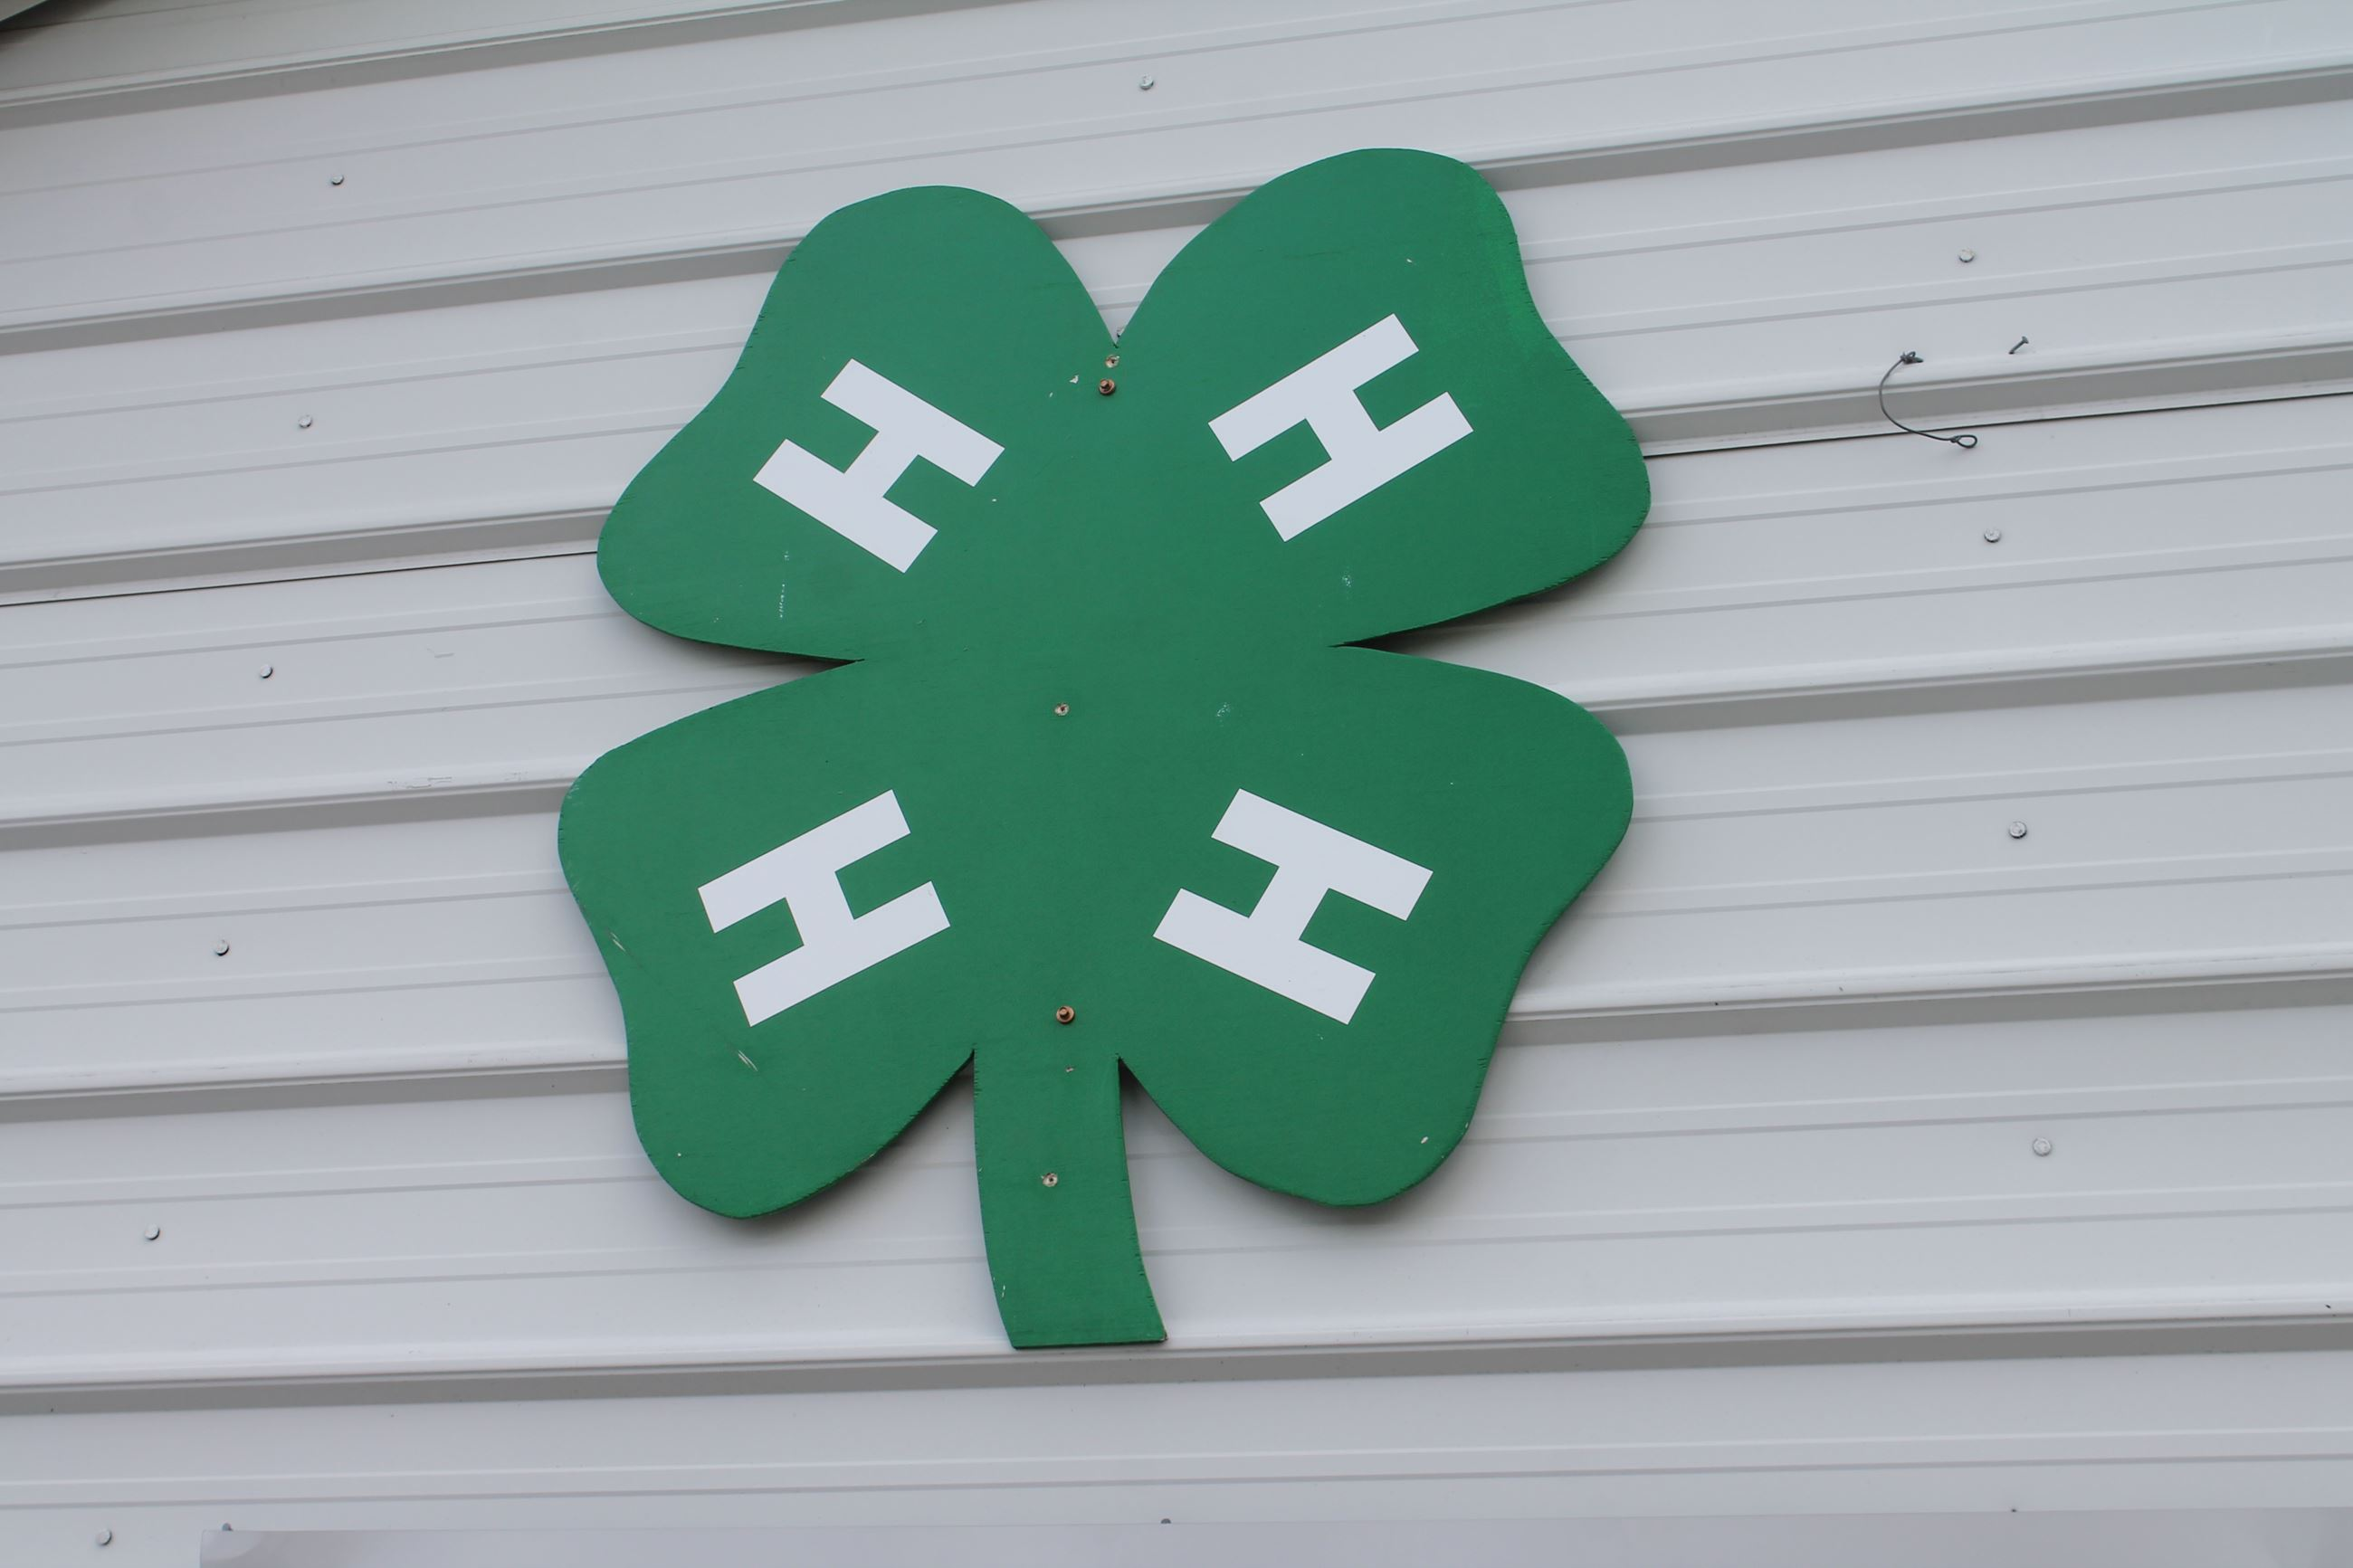 4H sign